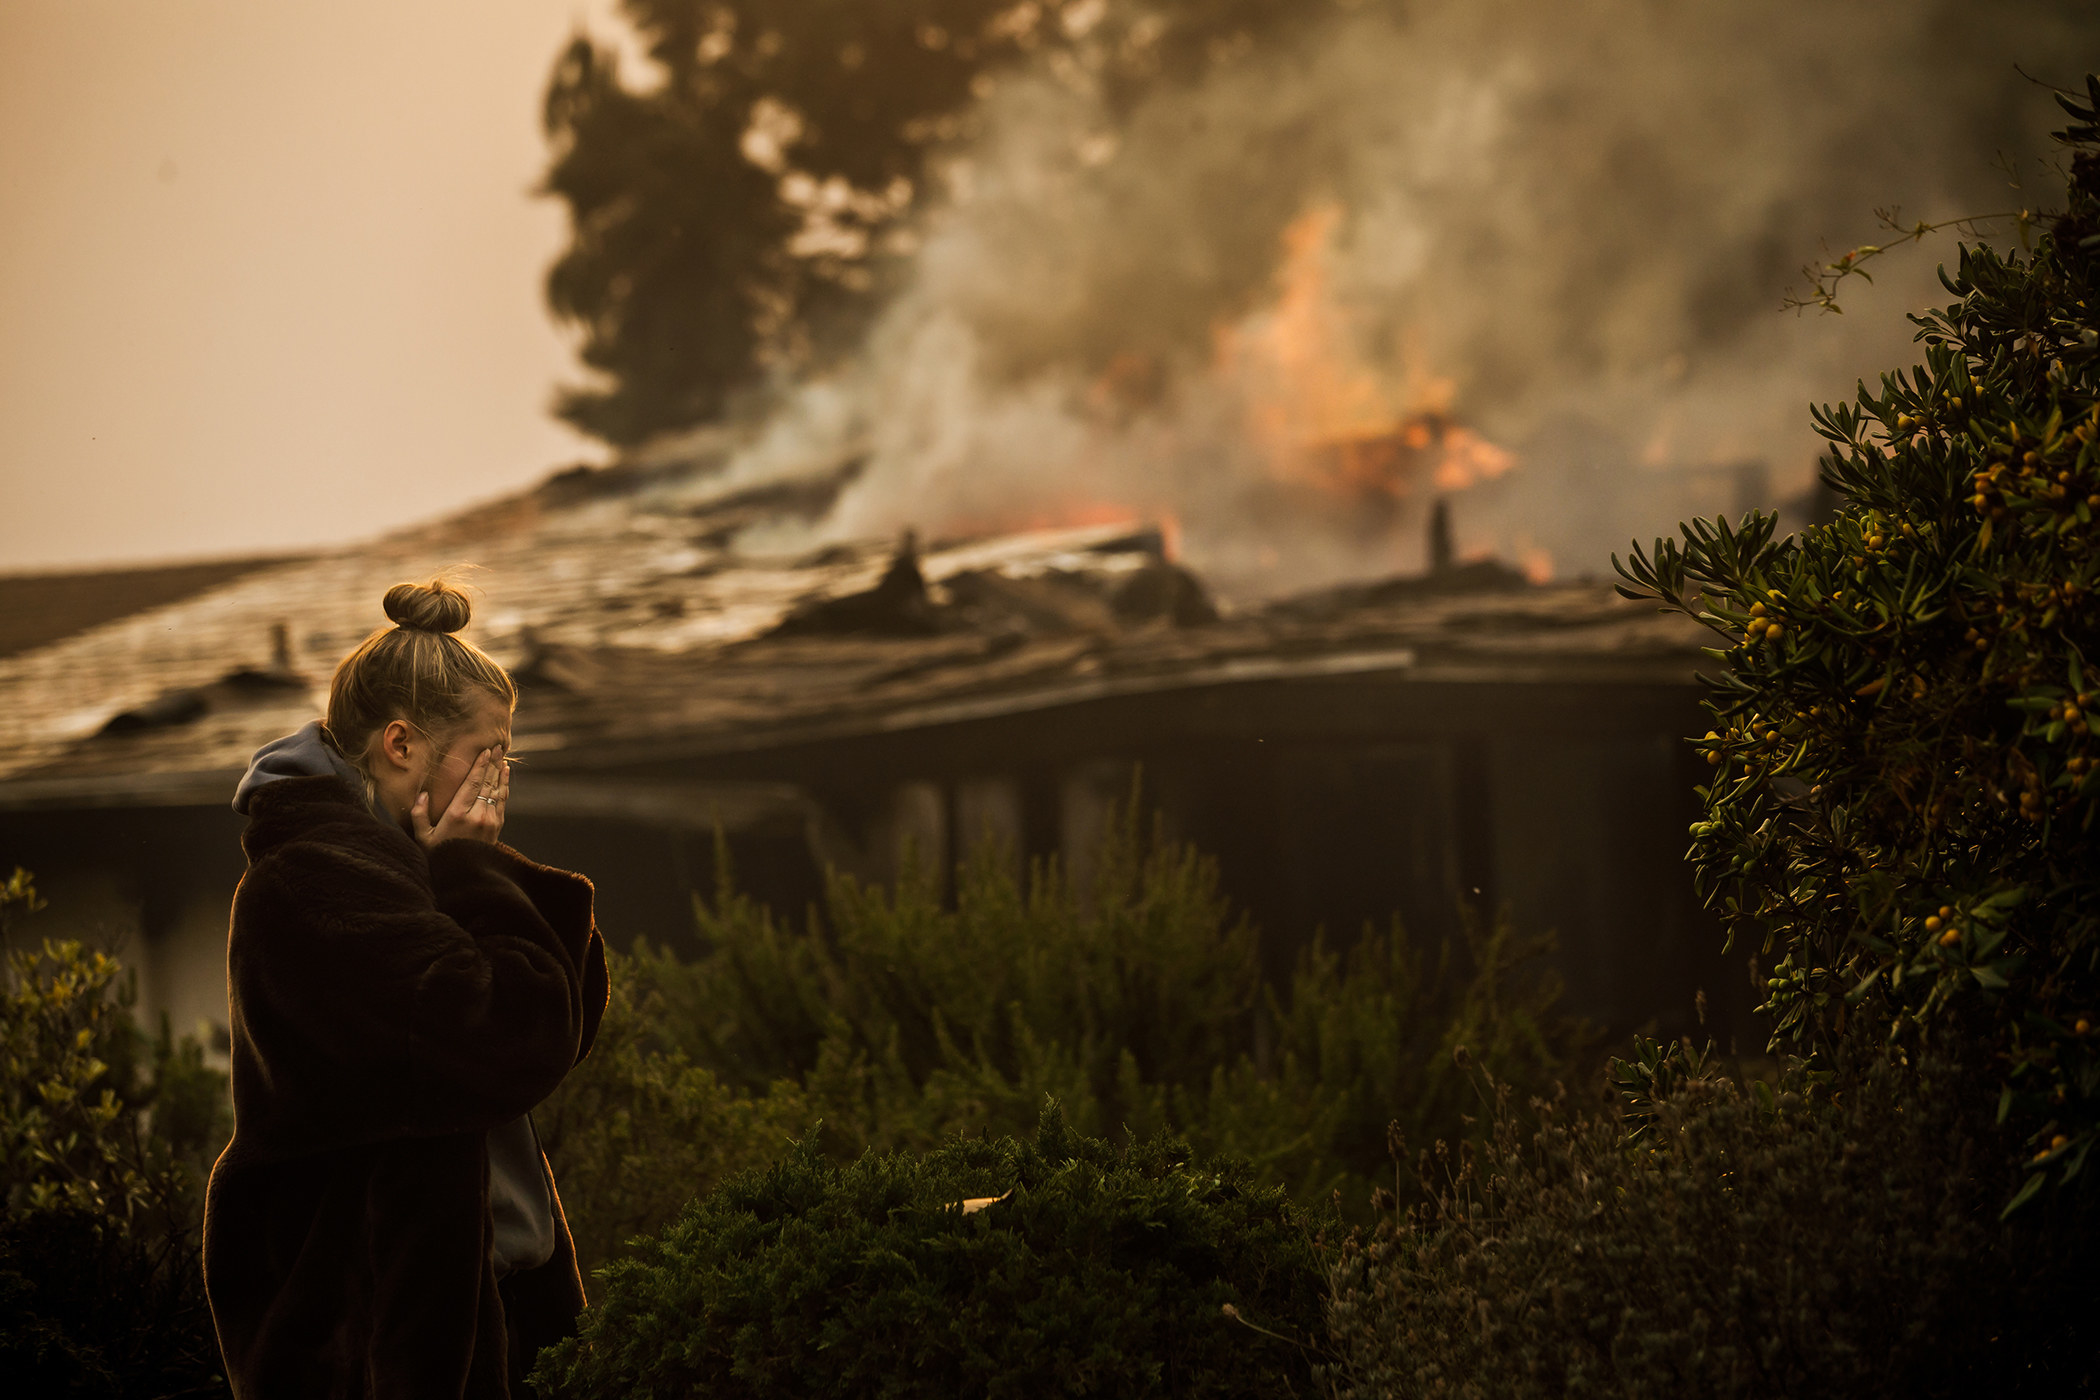 A woman wipes her tears in the foreground of a burning home